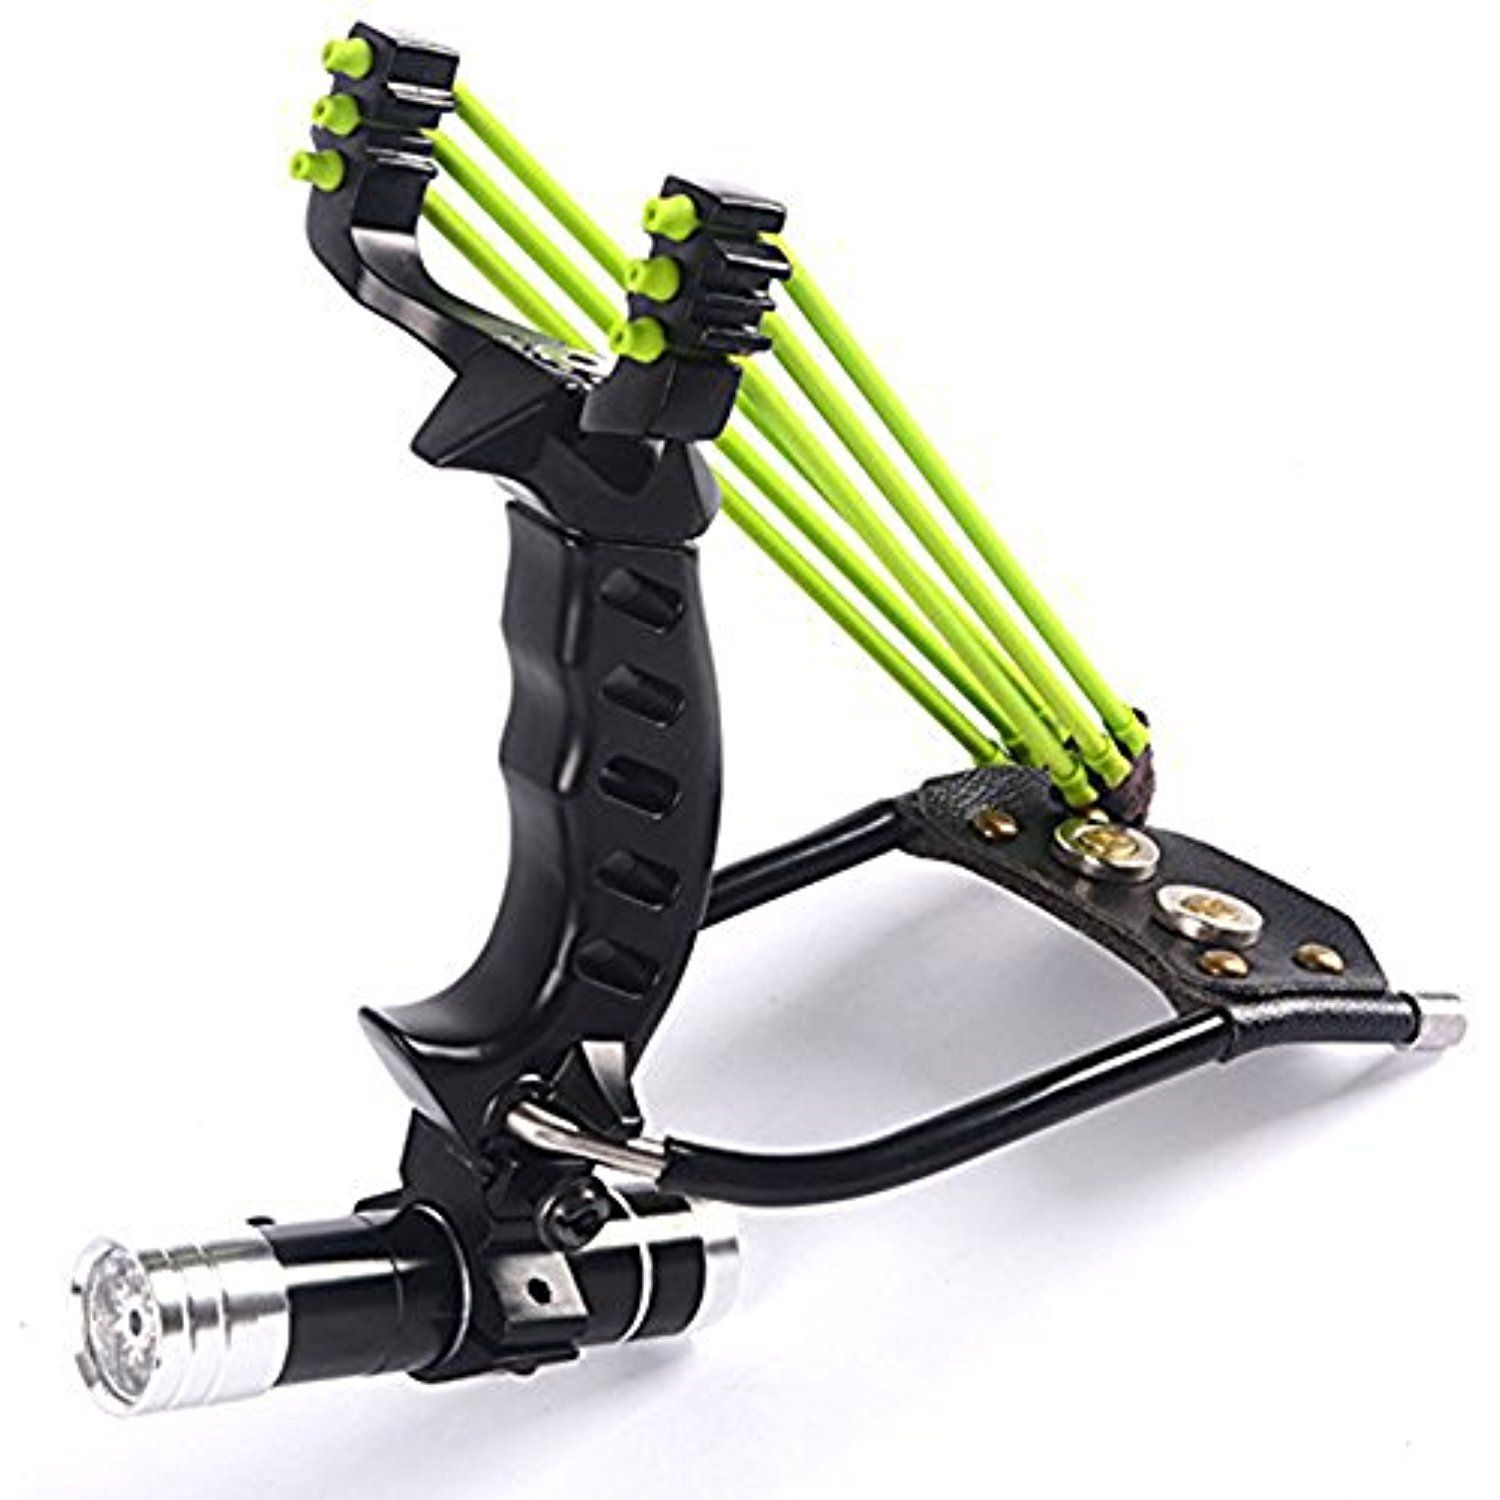 Steel Slingshot Catapult Bow Arrows Compound Hunting Bows Outdoor Games Tools